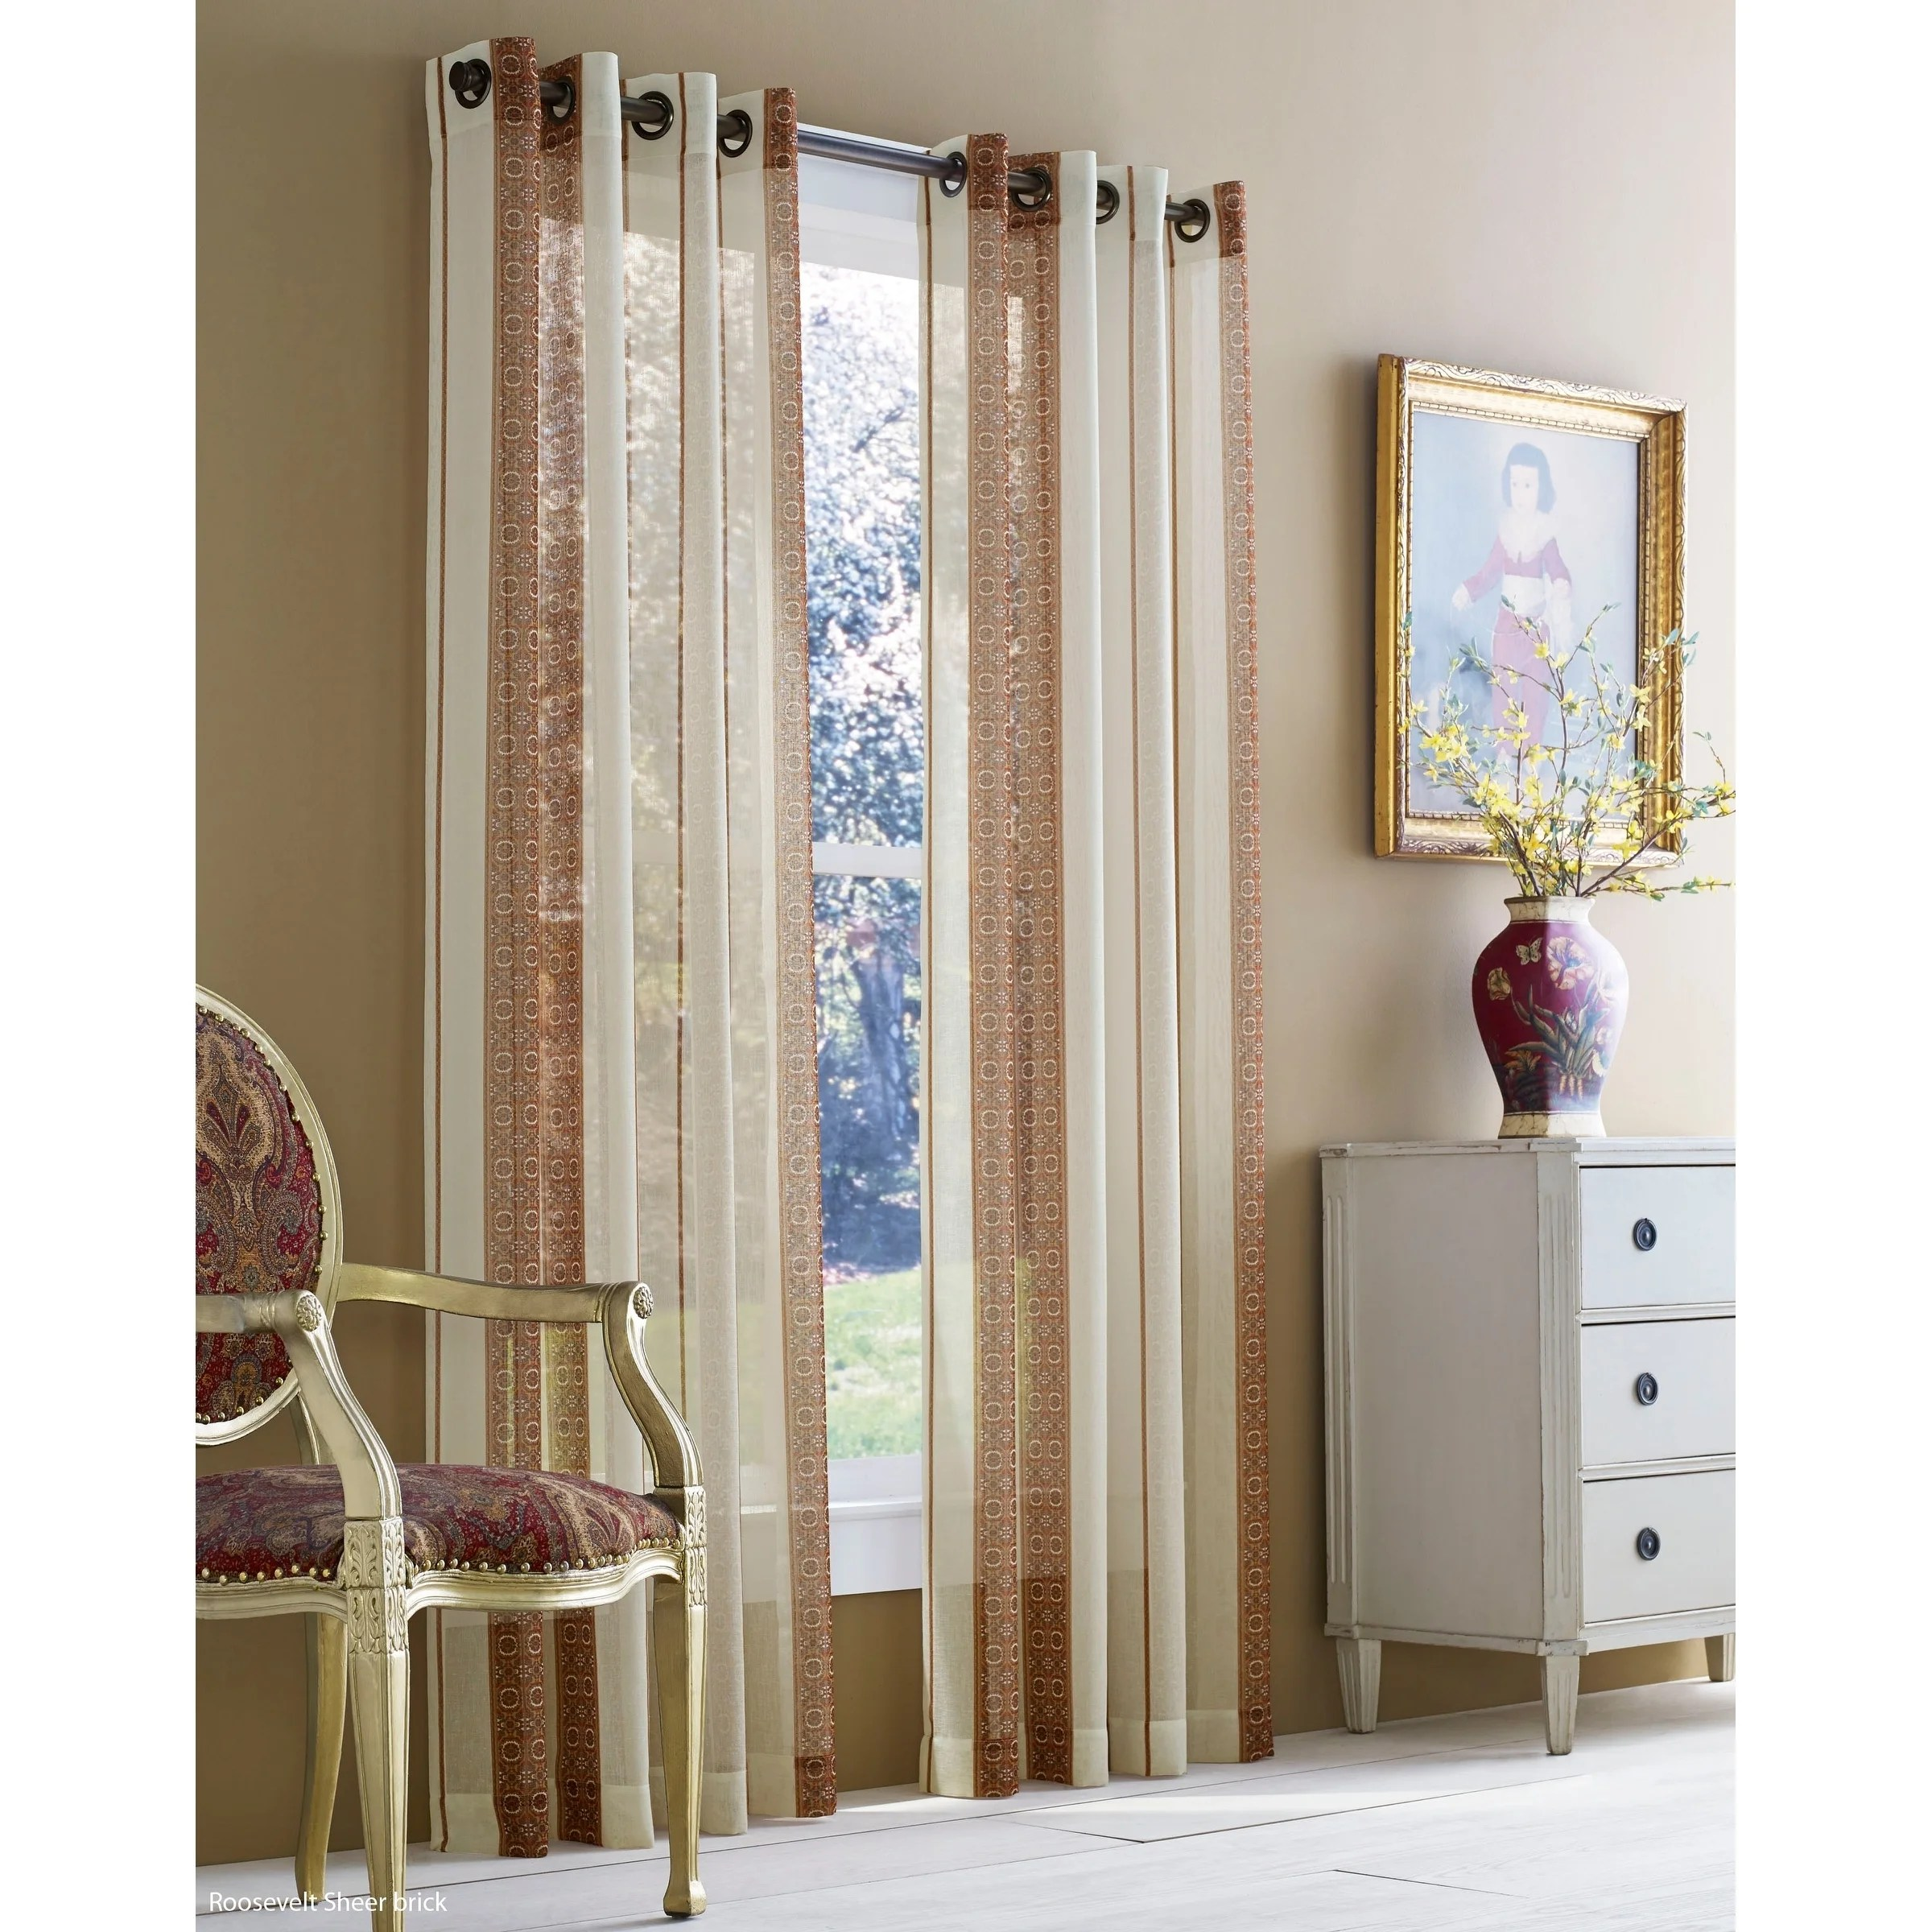 Rockland Textiles Five Queens Court Rockland Striped Sheer Curtain